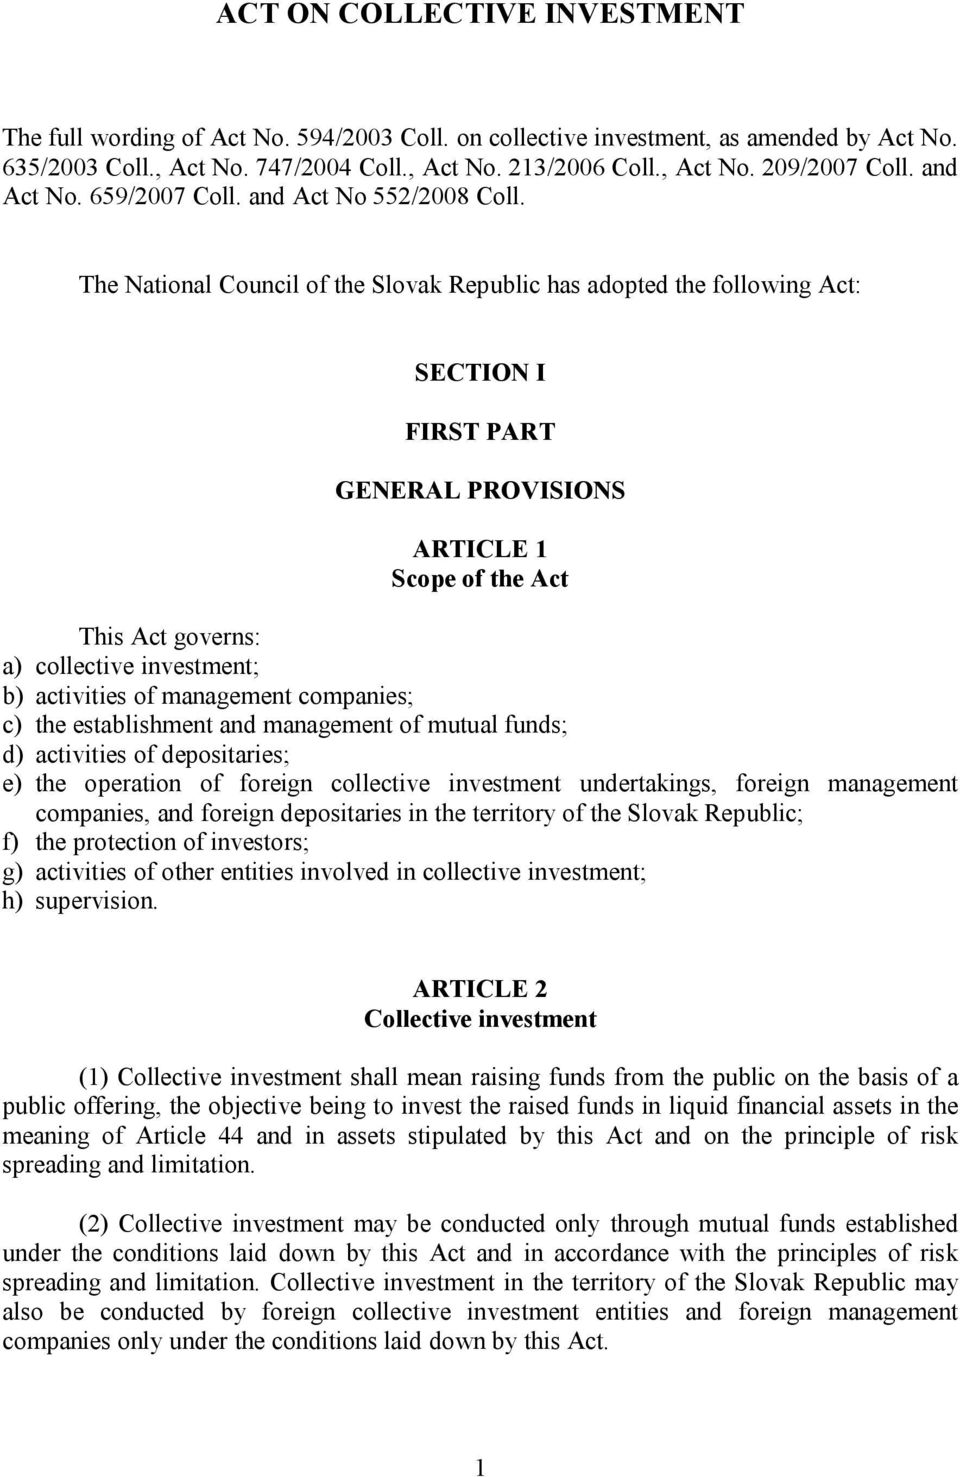 The National Council of the Slovak Republic has adopted the following Act: SECTION I FIRST PART GENERAL PROVISIONS ARTICLE 1 Scope of the Act This Act governs: a) collective investment; b) activities